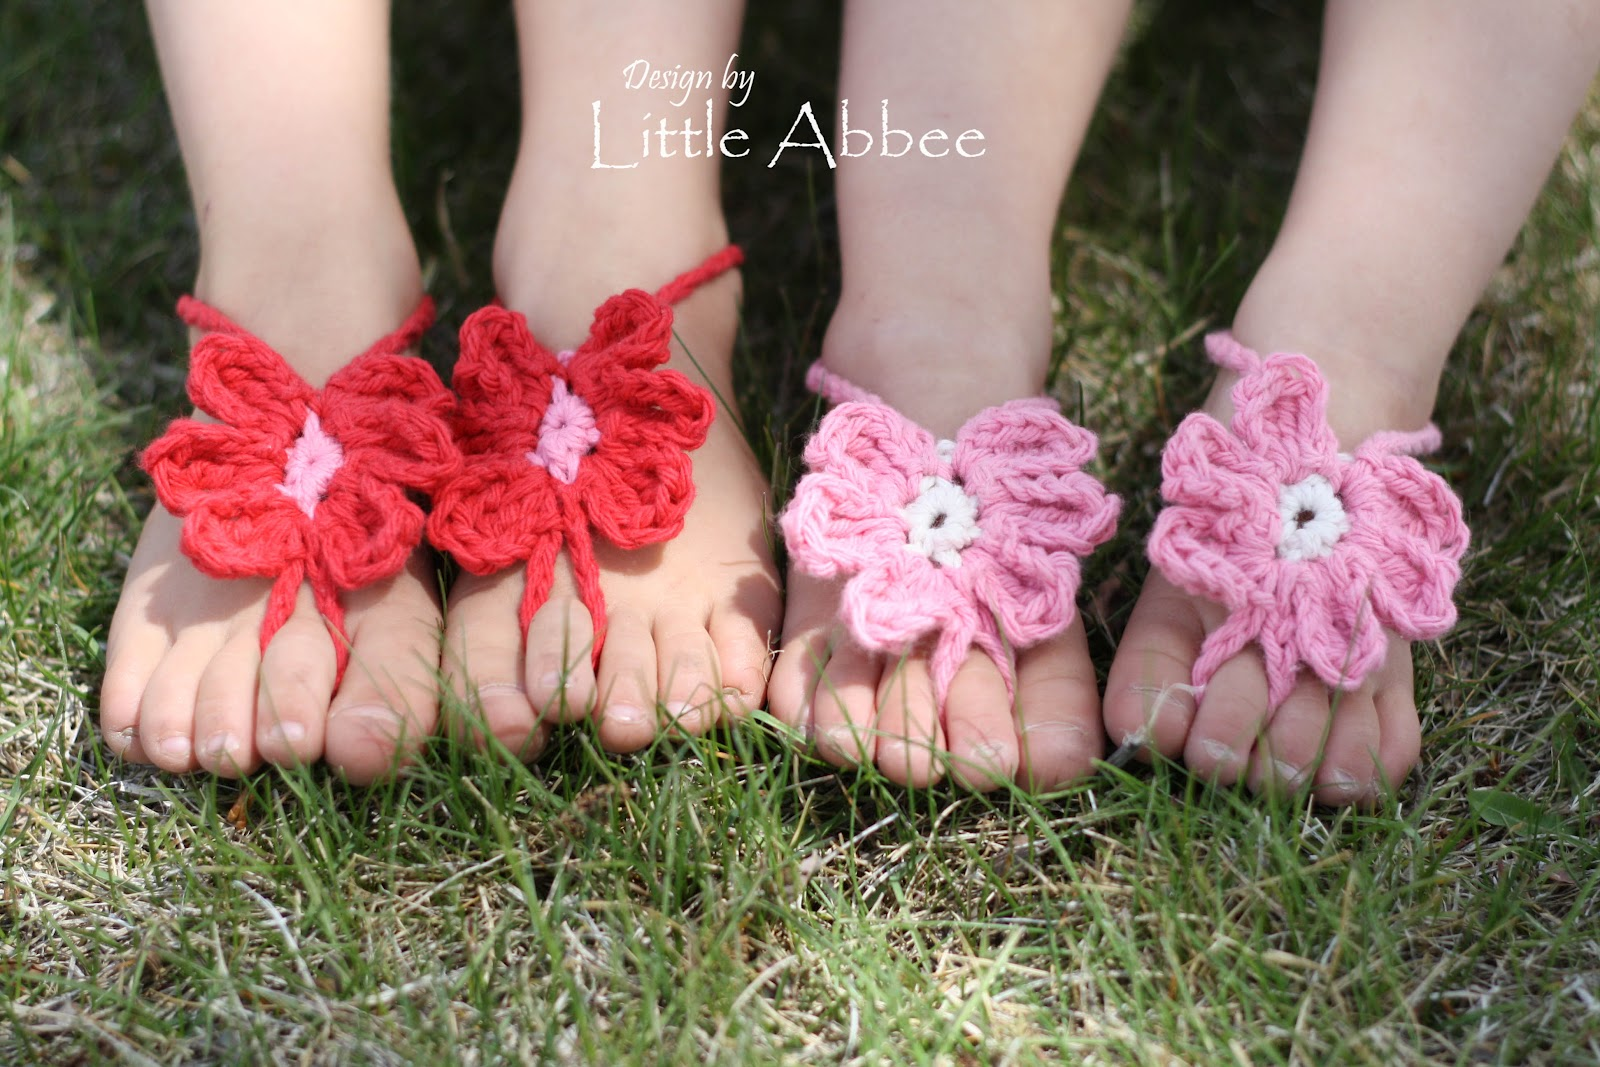 Crochet Baby Toe Sandals Free Pattern : 30+ Awesome Crochet Barefoot Sandals Patterns - Page 3 of 3